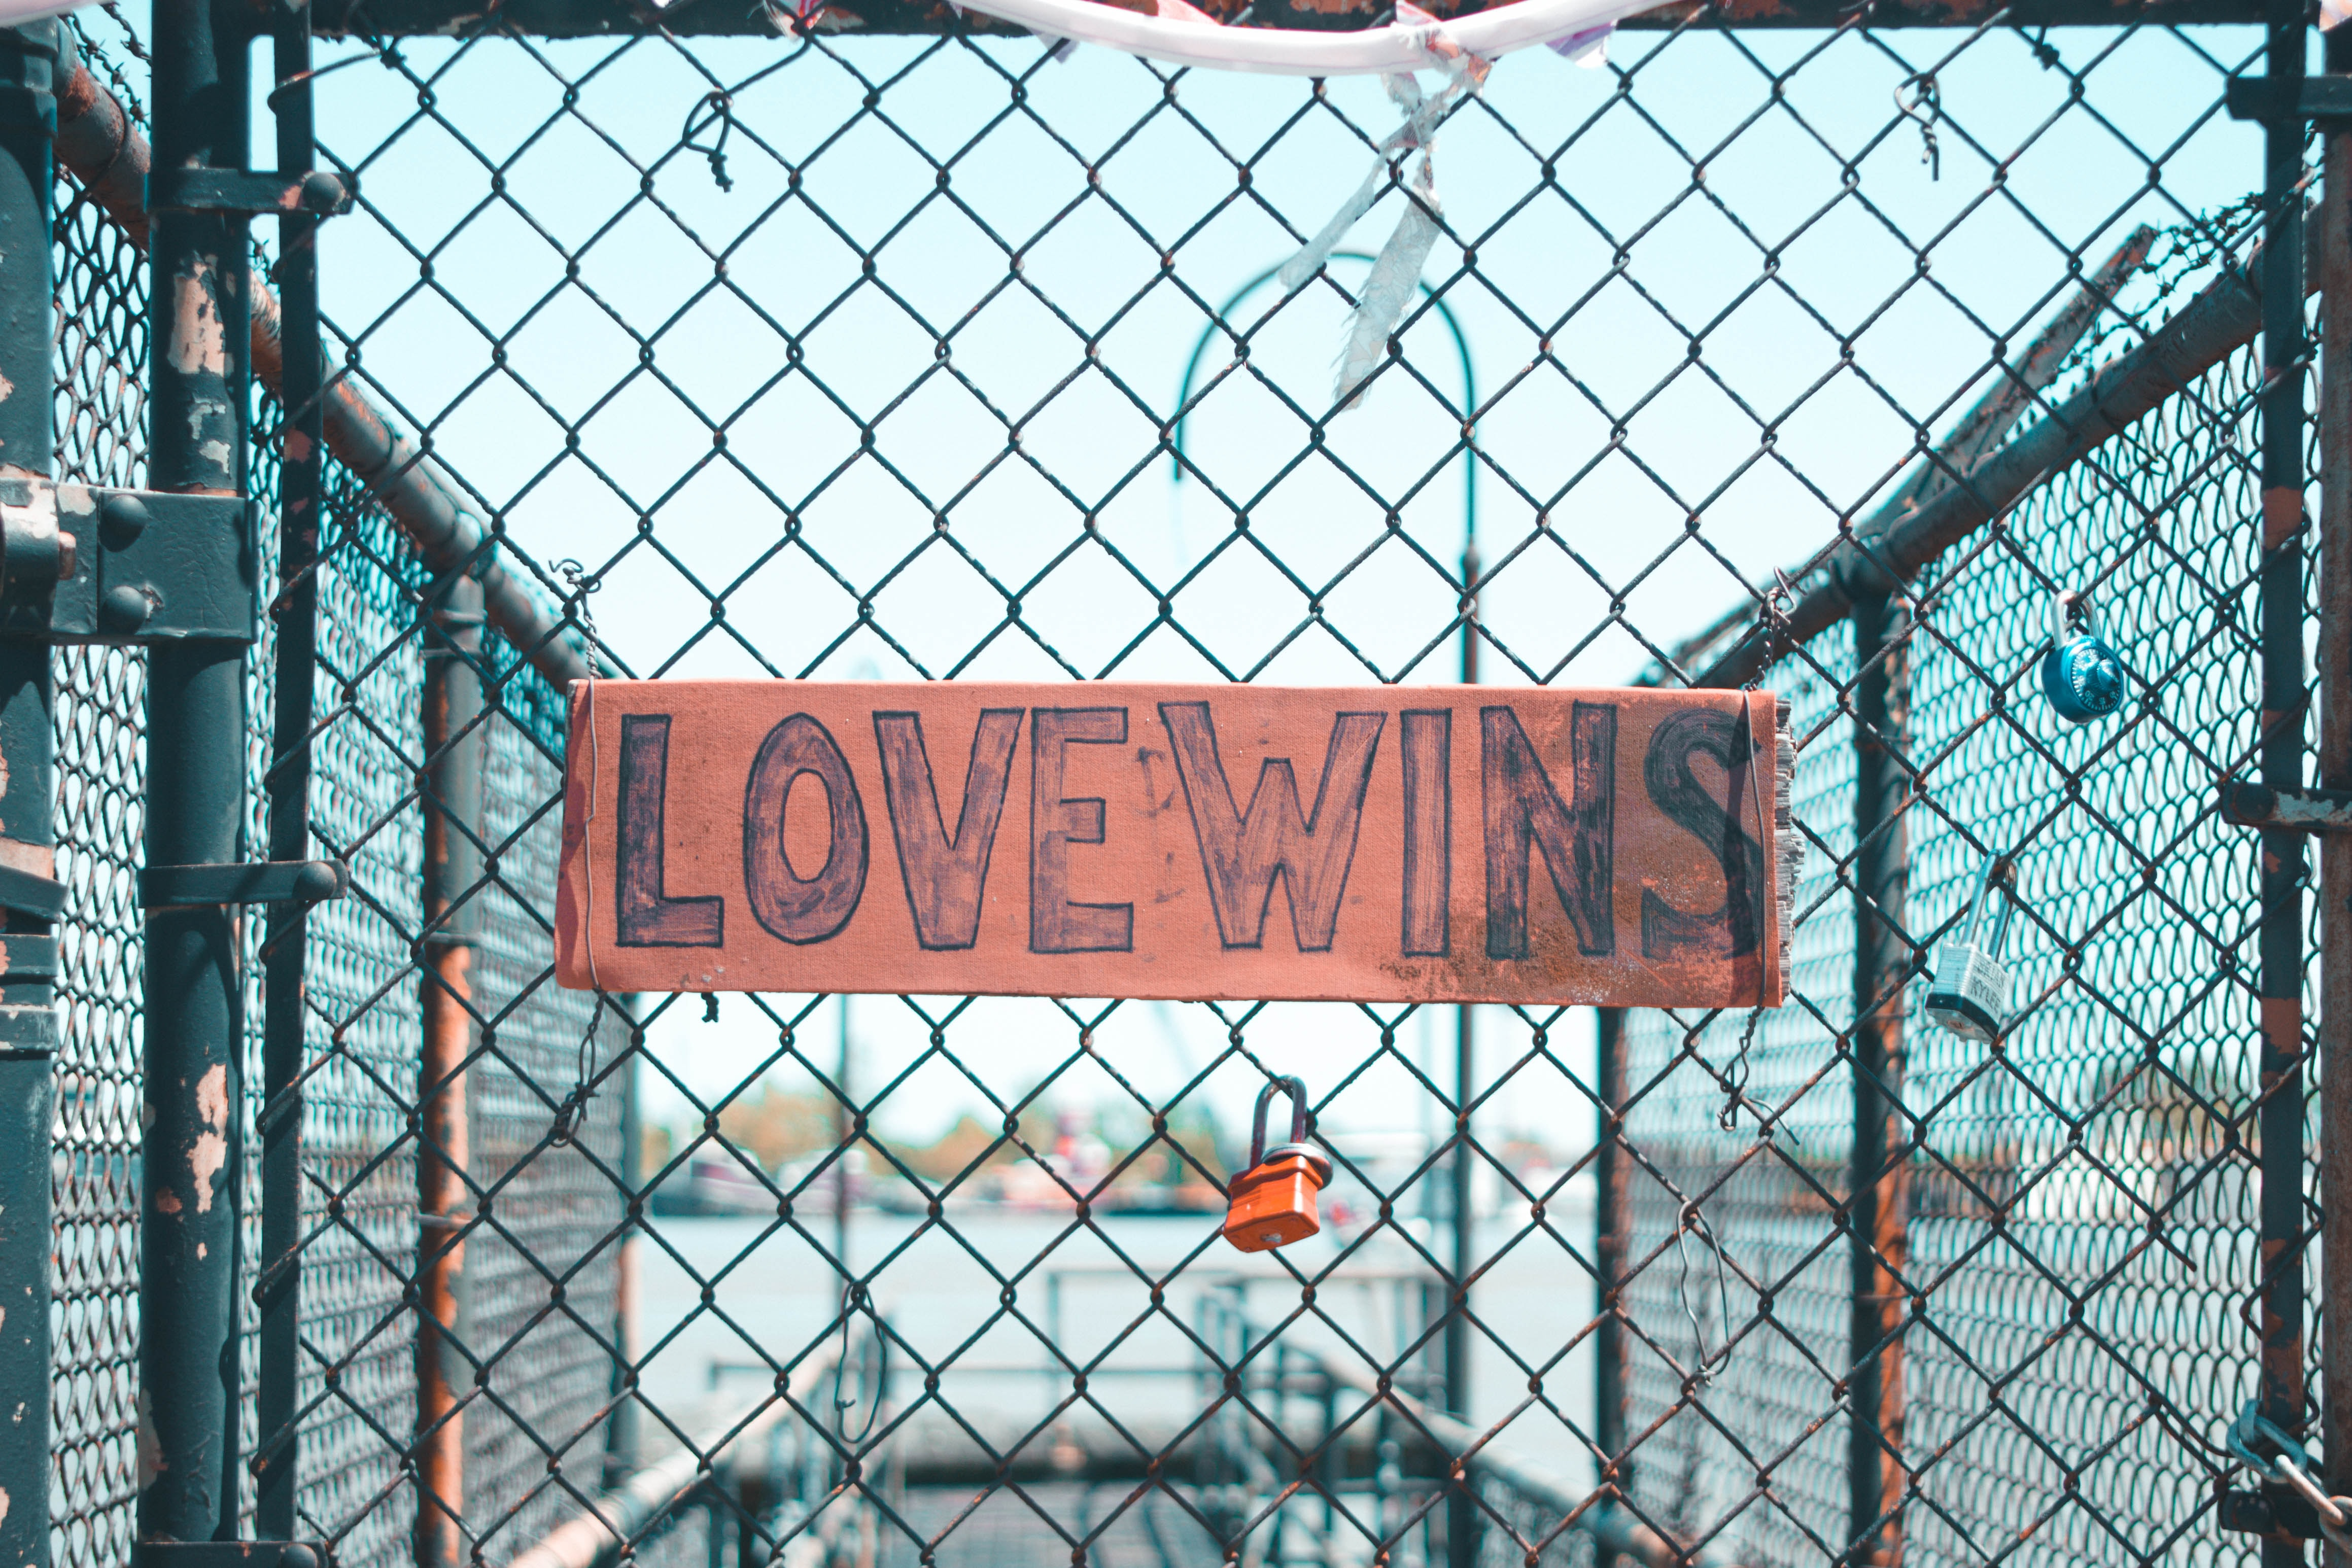 Love Wins-printed signage